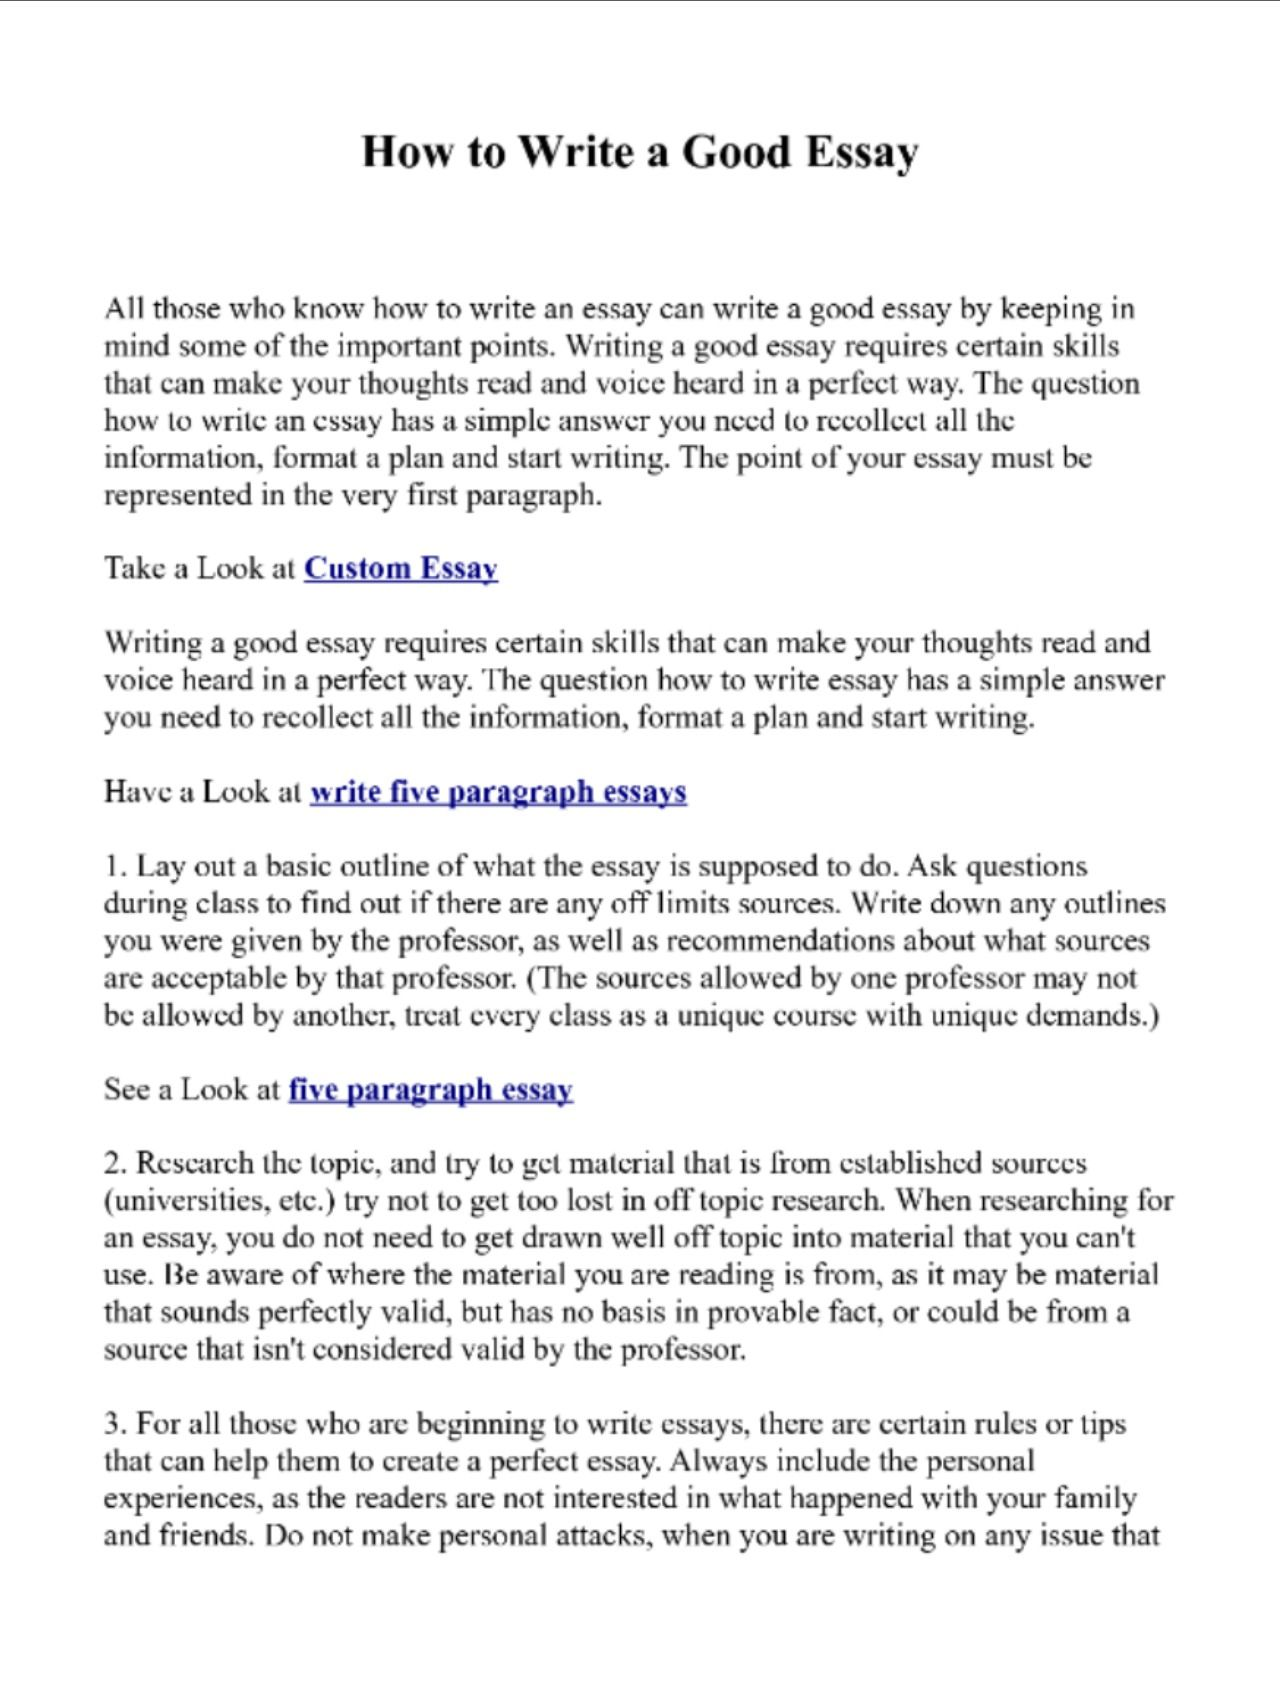 How To Write A Good Analytical Essay - How To Write An Academic